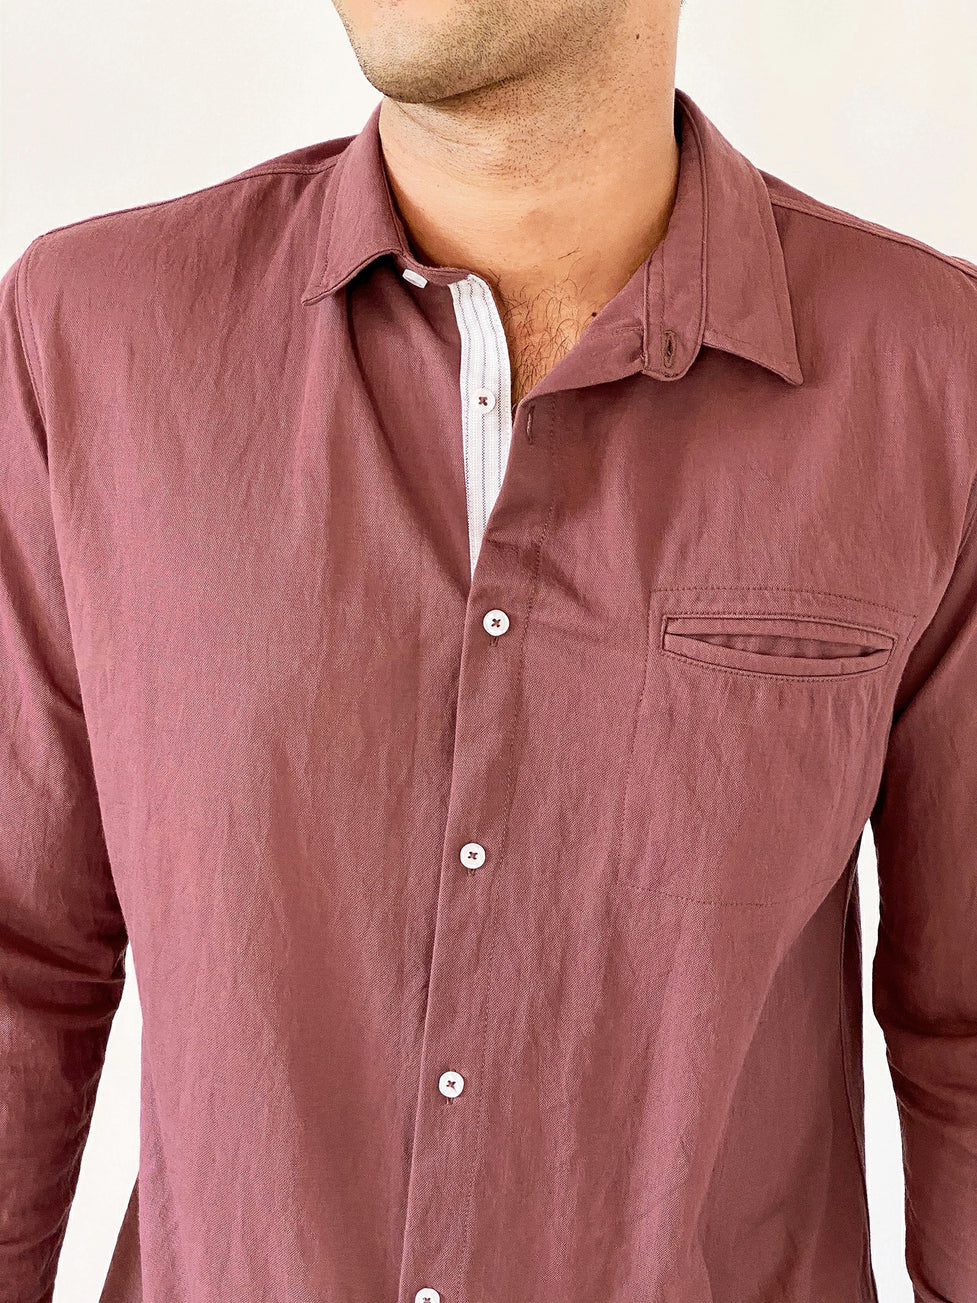 Long Sleeved Jersey Shirt with Contrast Placket